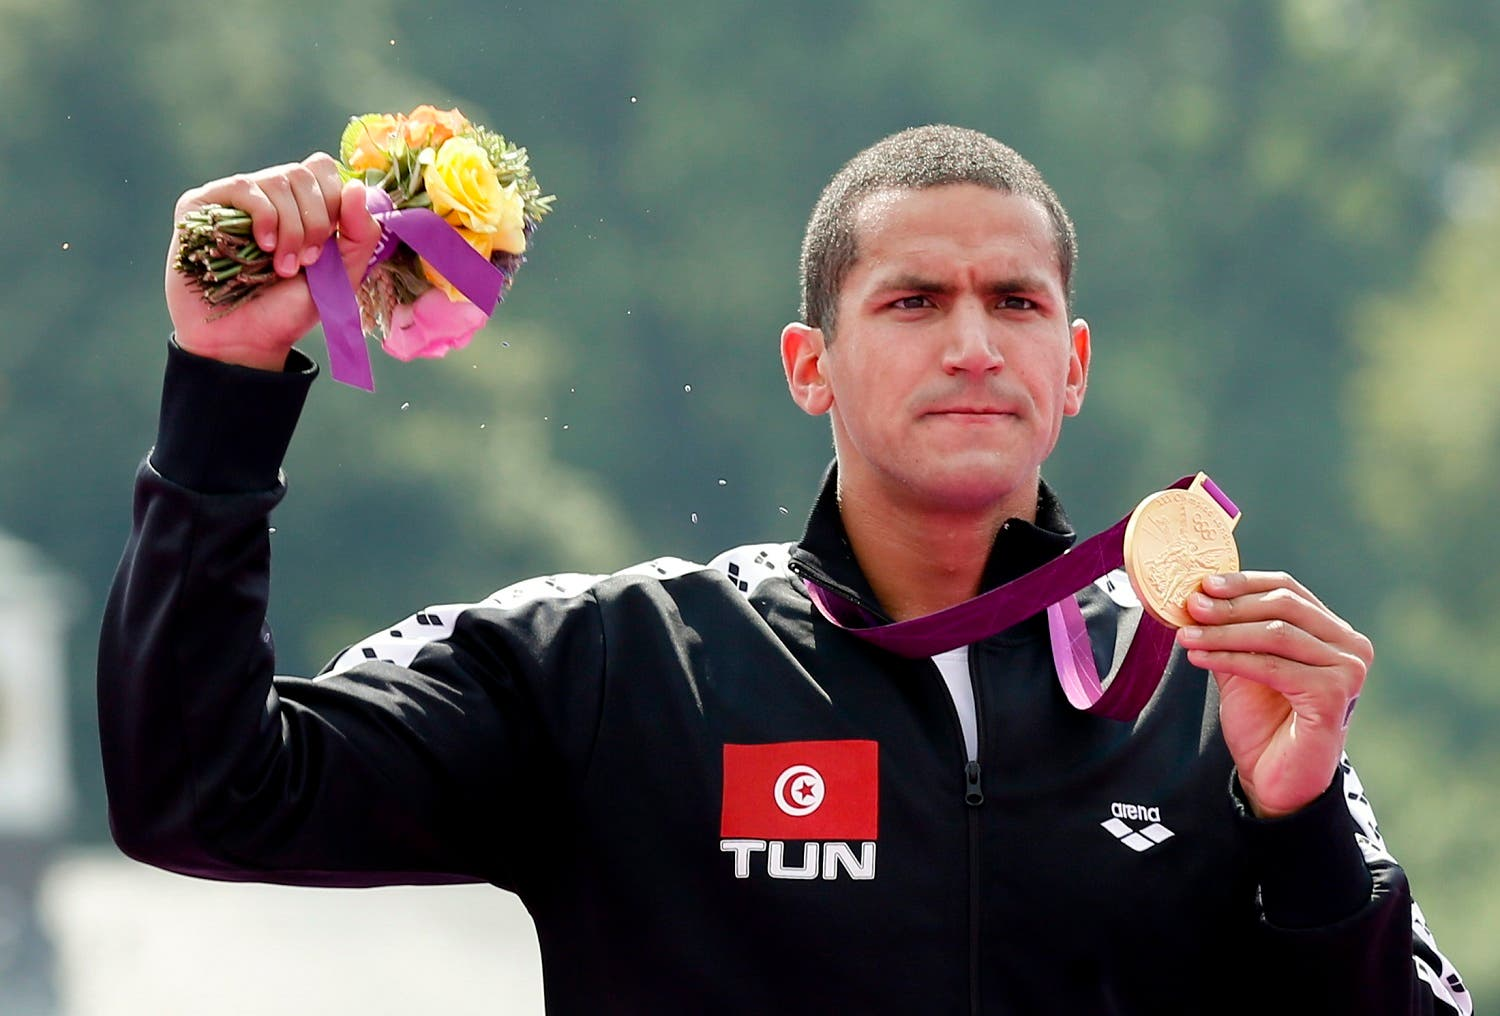 Tunisia's Oussama Mellouli poses with his gold medal after the men's 10km marathon swimming at Hyde Park during the London Olympic Games August 10, 2012. (Reuters)